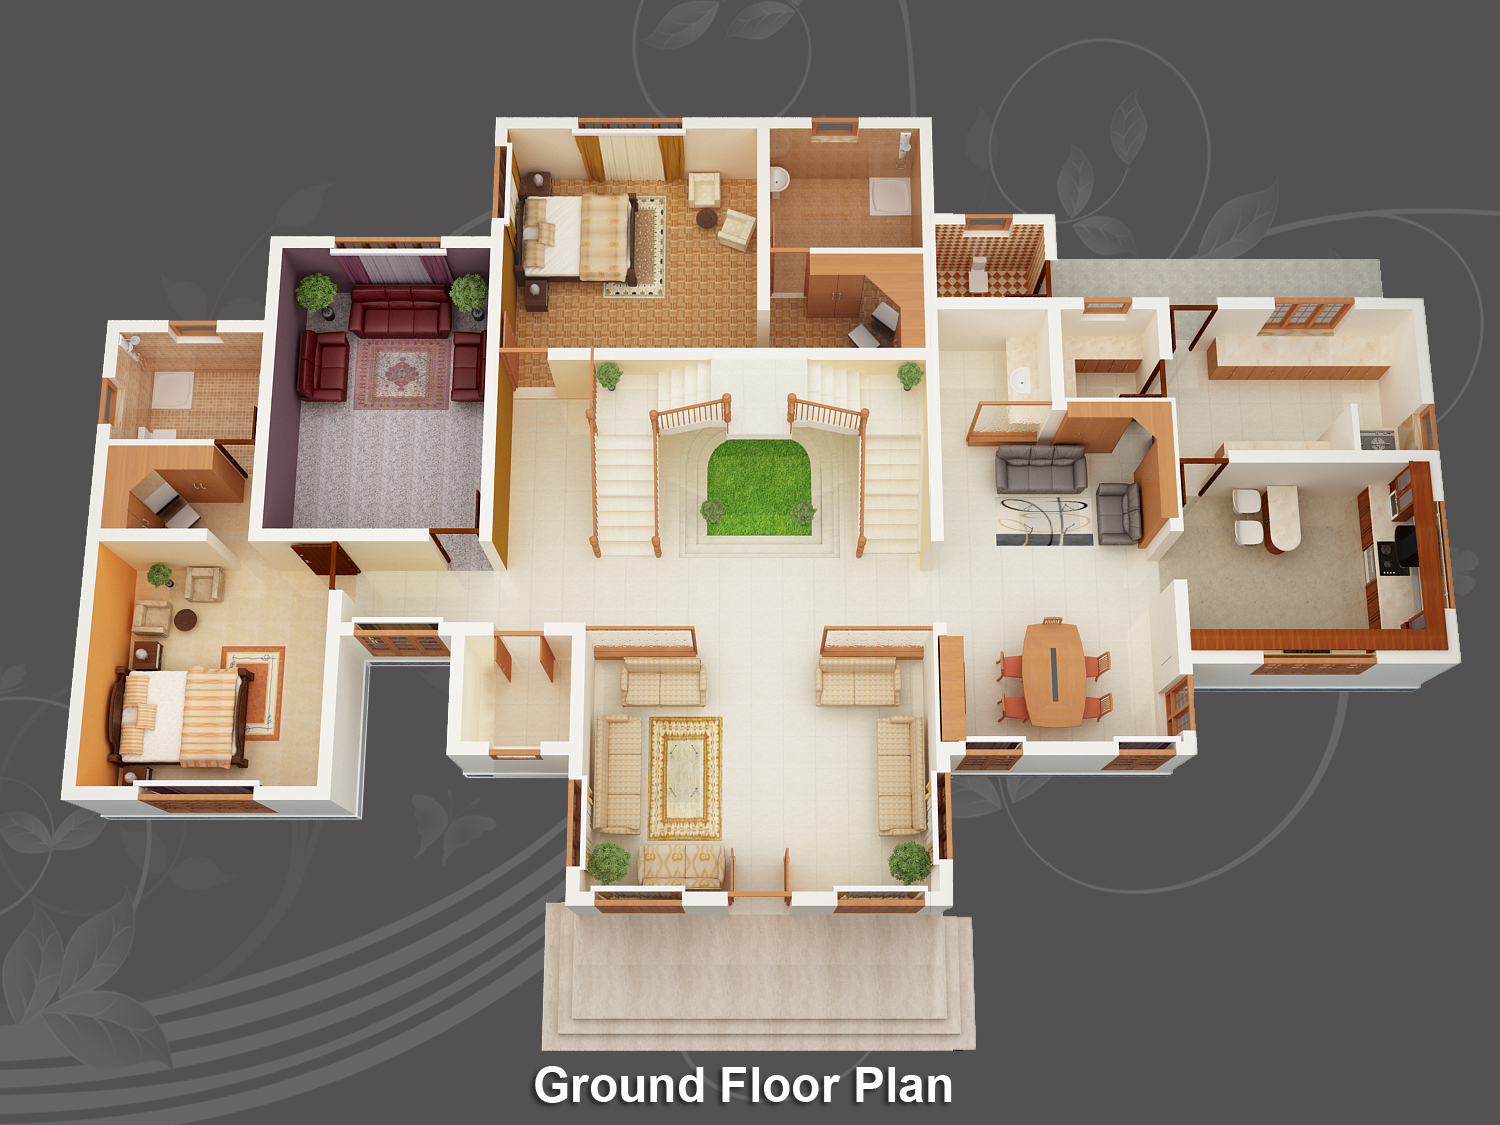 Evens construction pvt ltd 3d house plan 20 05 2011 House plan 3d online